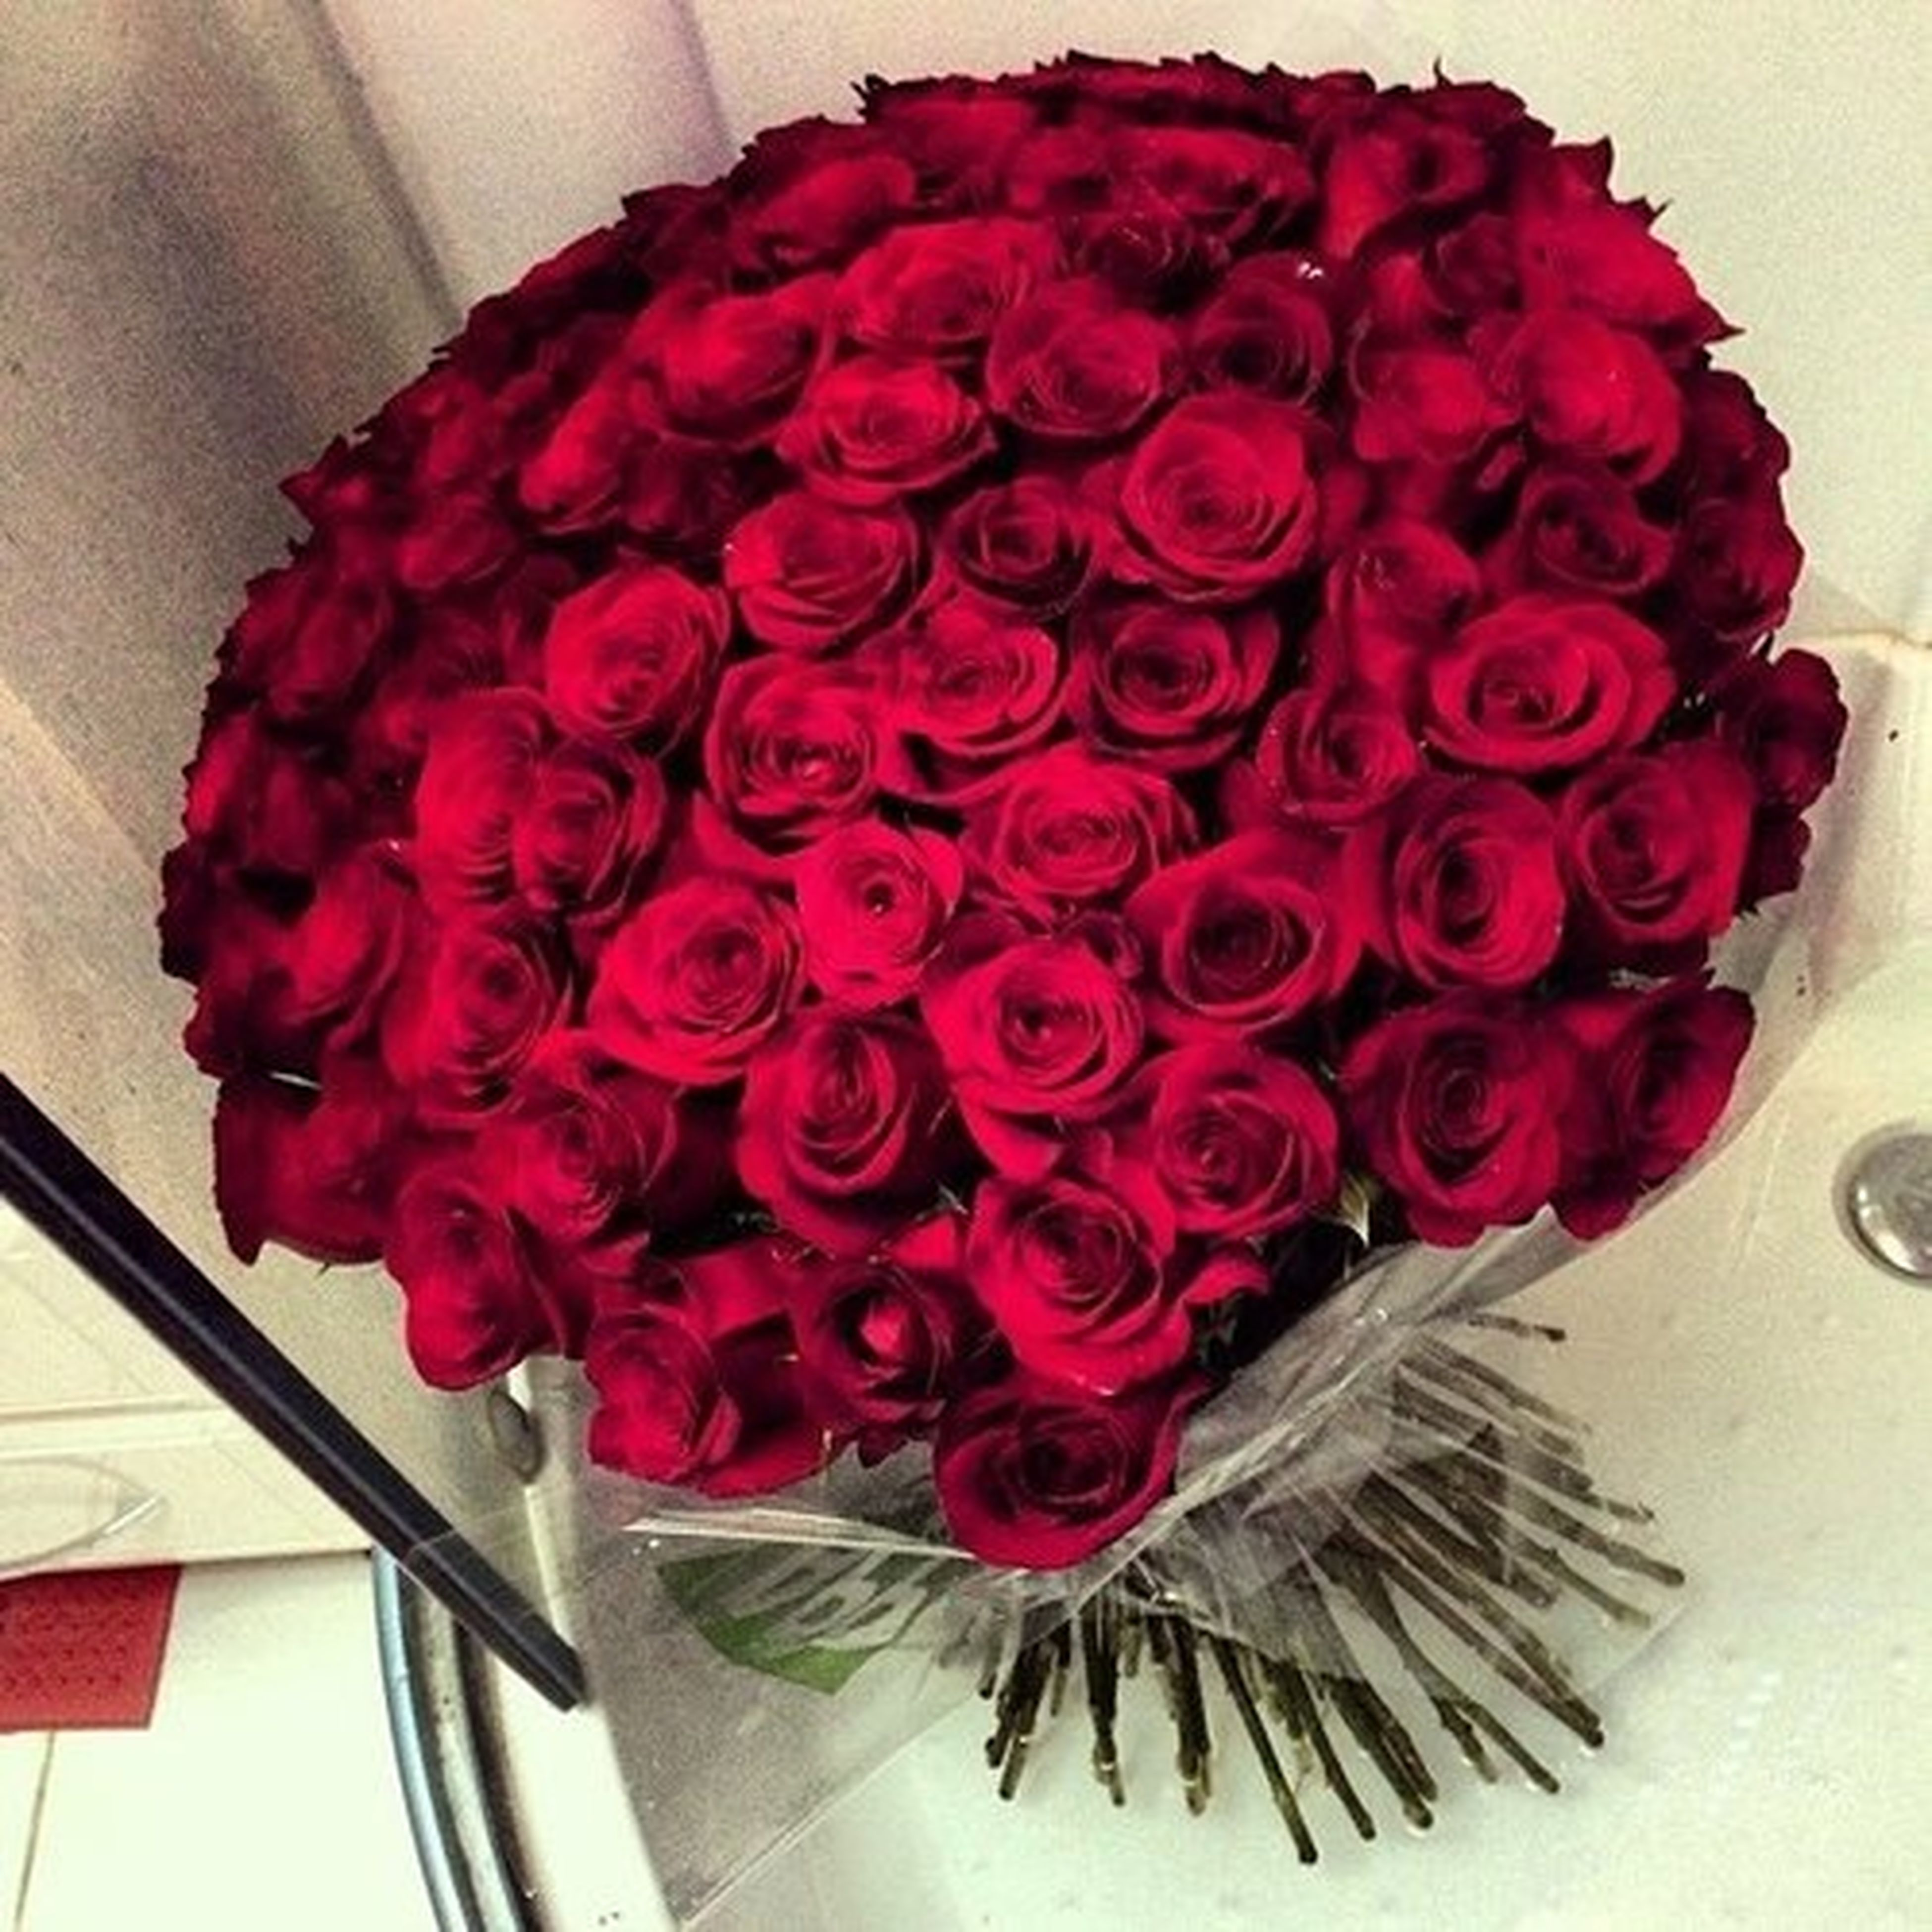 indoors, flower, freshness, table, red, vase, petal, high angle view, decoration, still life, fragility, home interior, close-up, pink color, flower head, bouquet, flower arrangement, no people, rose - flower, bunch of flowers